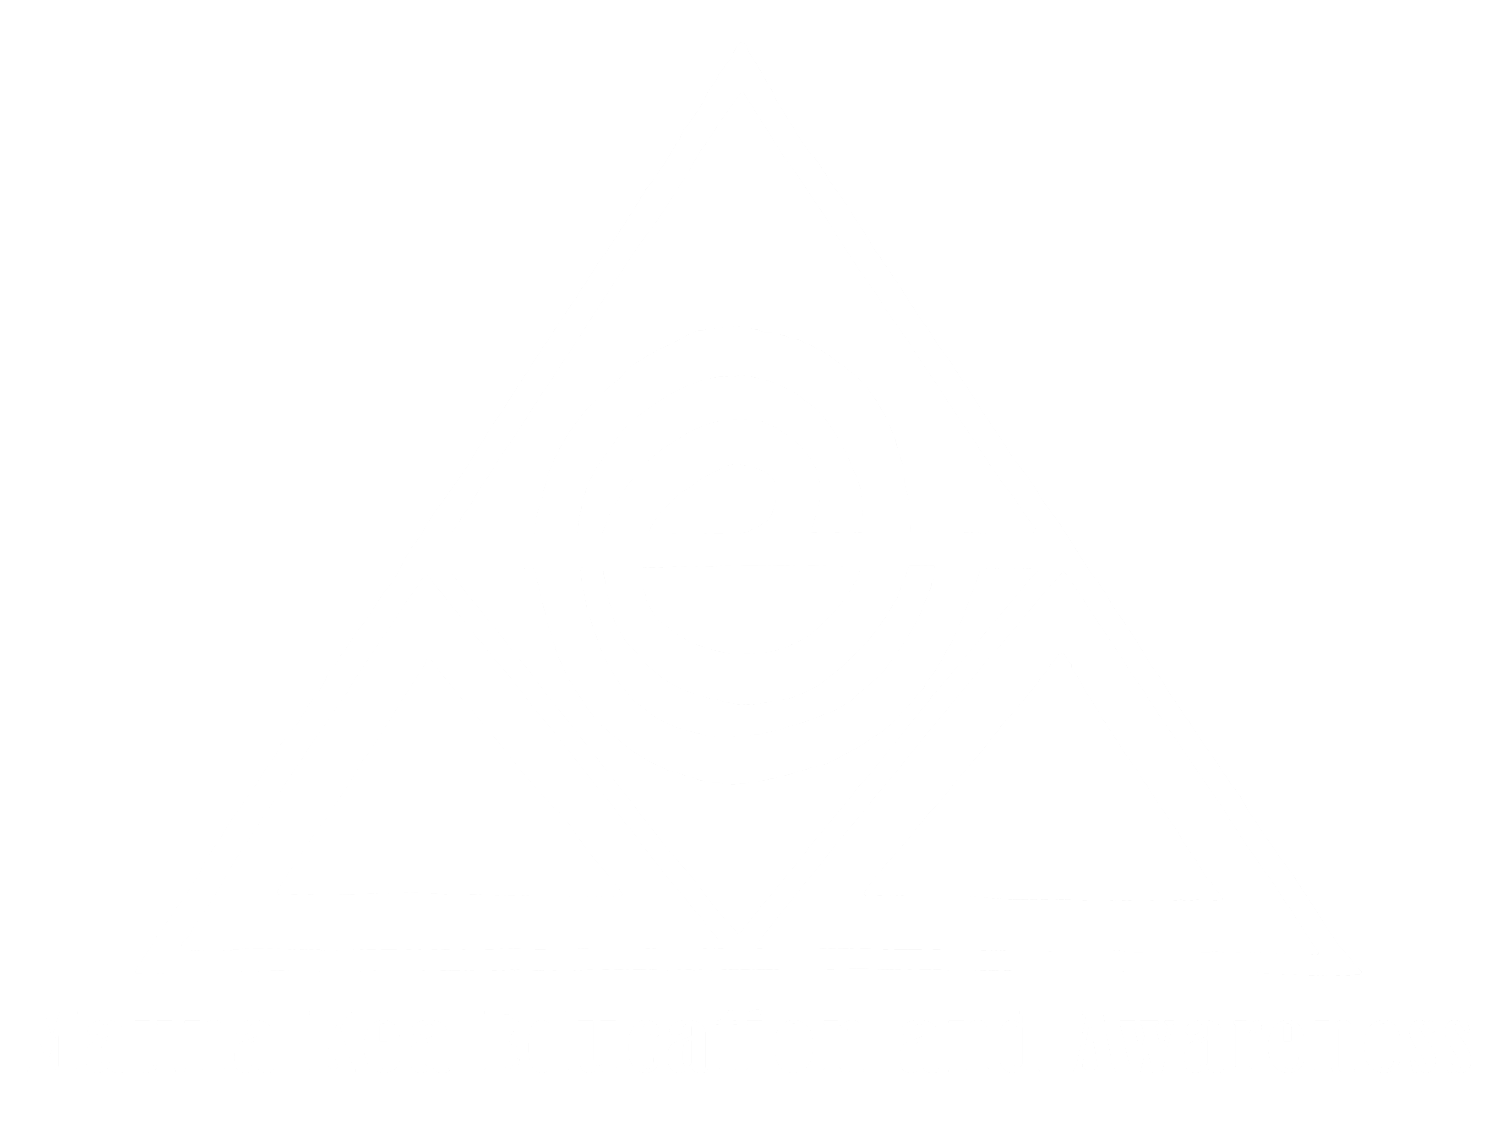 Mauna Kea Education and Awareness